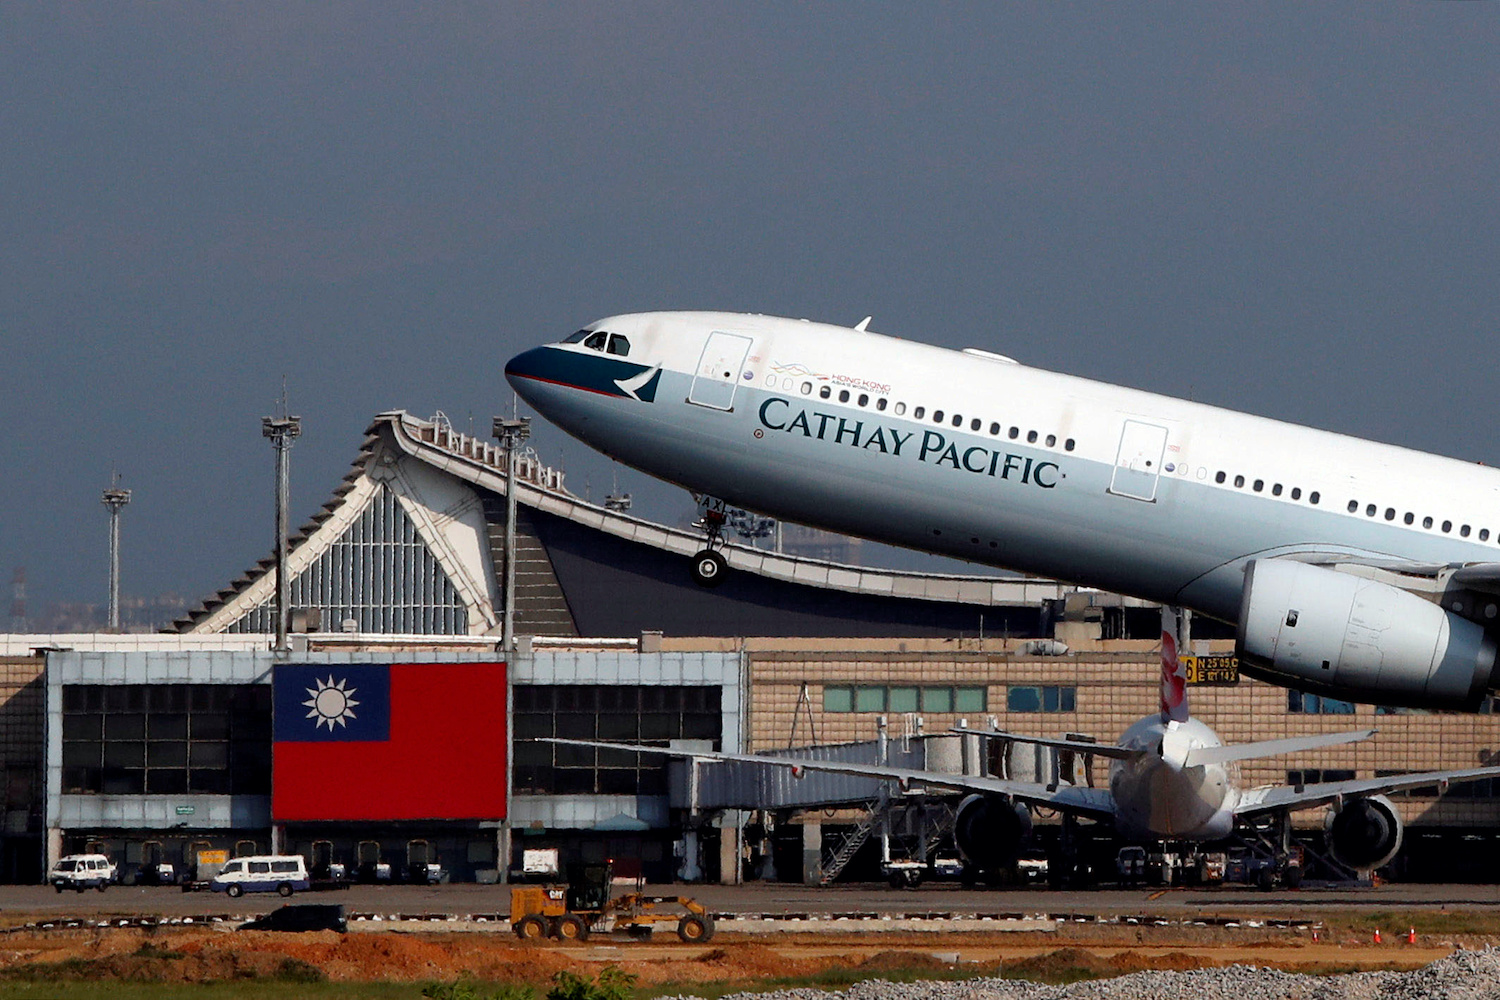 A Cathay Pacific Airbus A330-300  takes off from Taoyuan International Airport in Taiwan. (Reuters Photo)